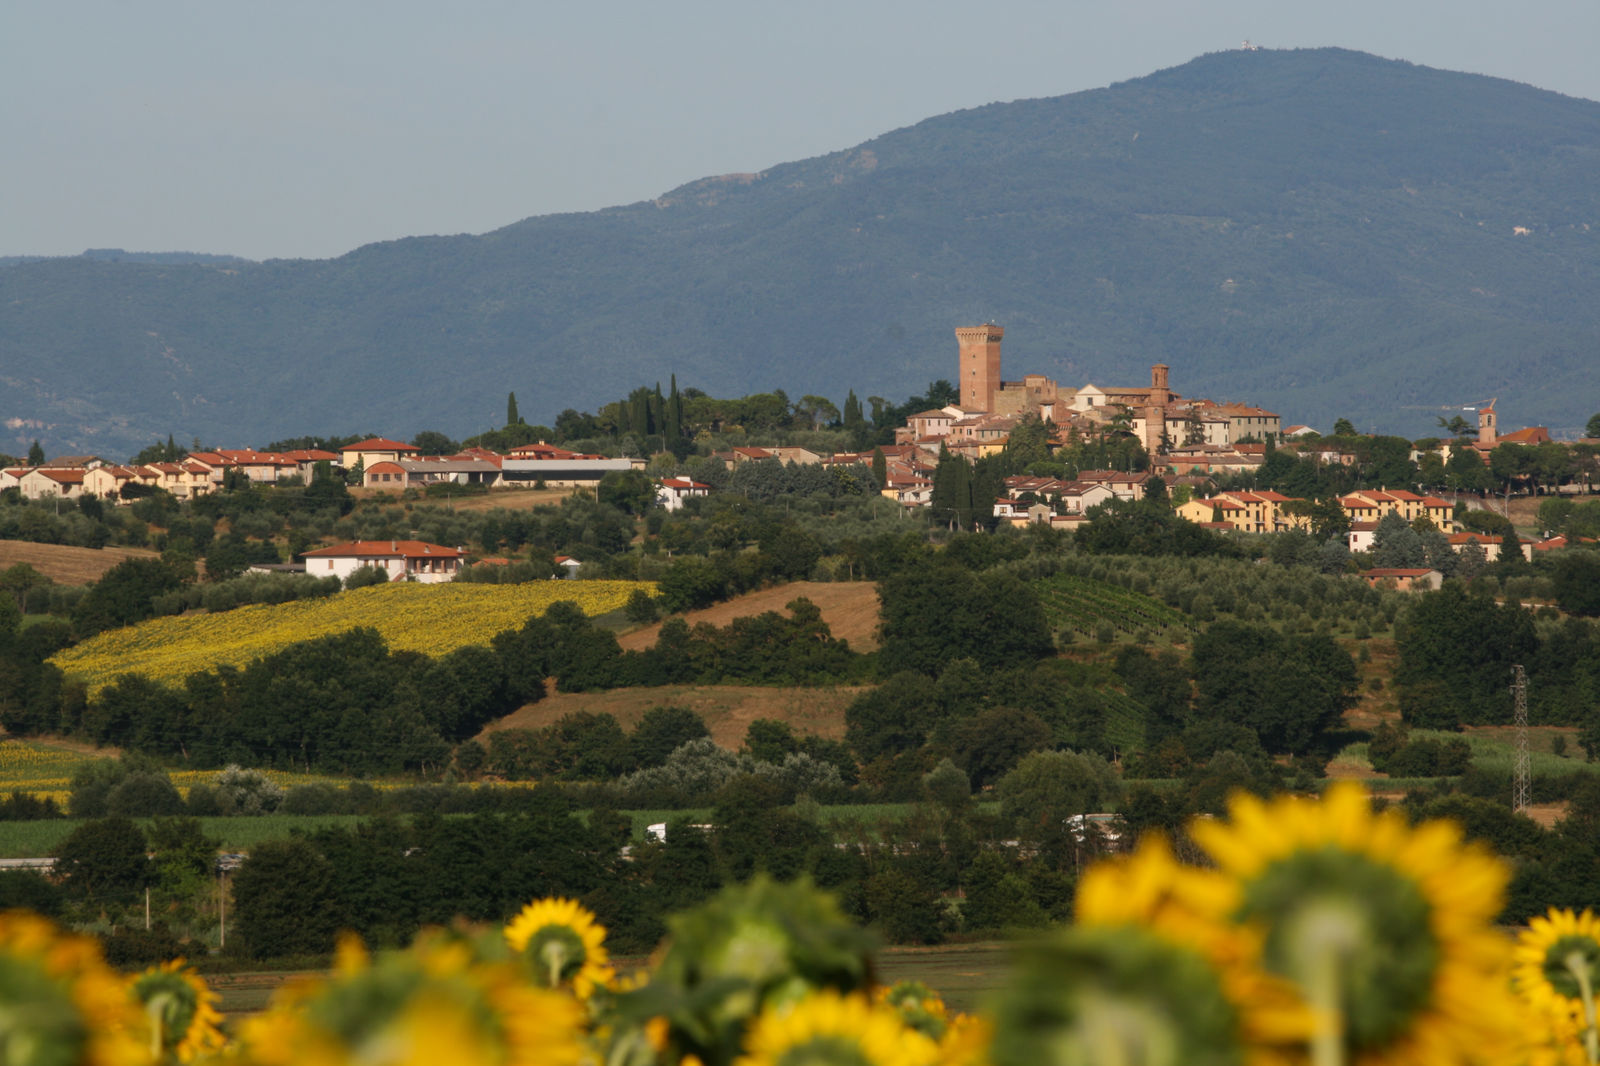 Marciano della Chiana - How history was made on 2 August 1554